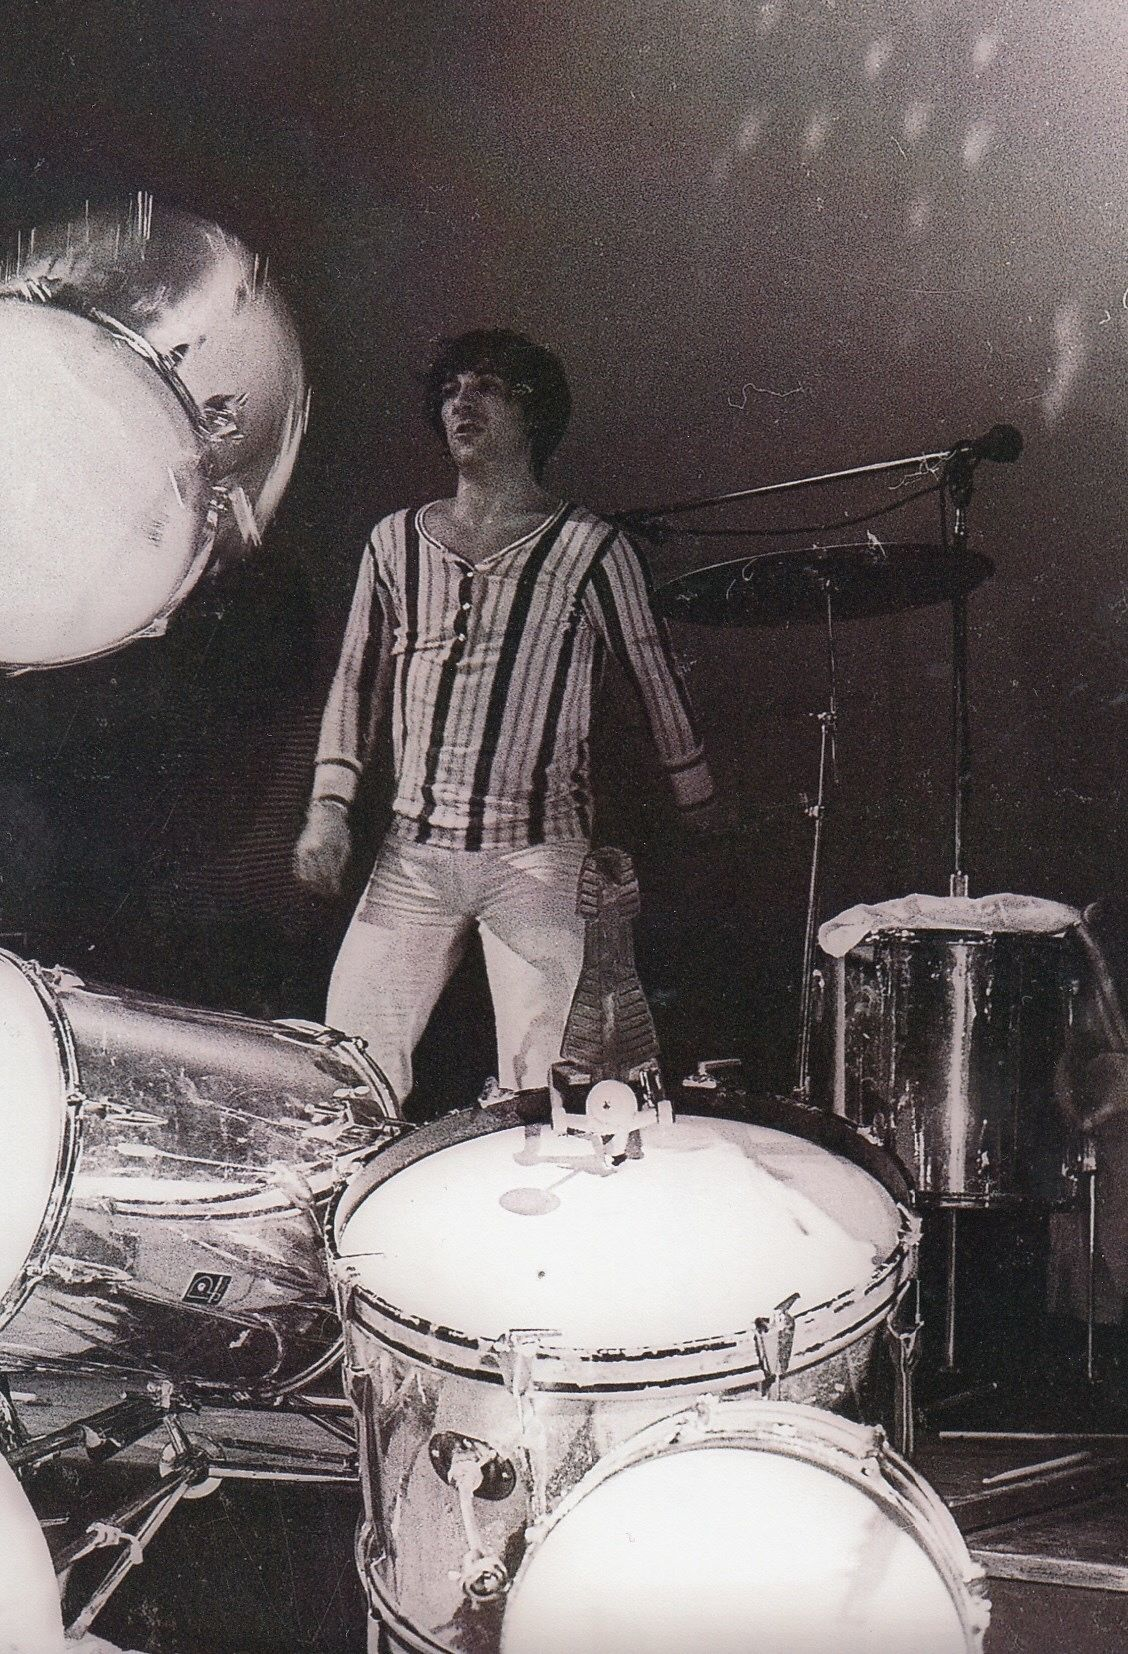 Keith Moon Destroys His Drum Kit Fillmore East Nyc May 16th 1969